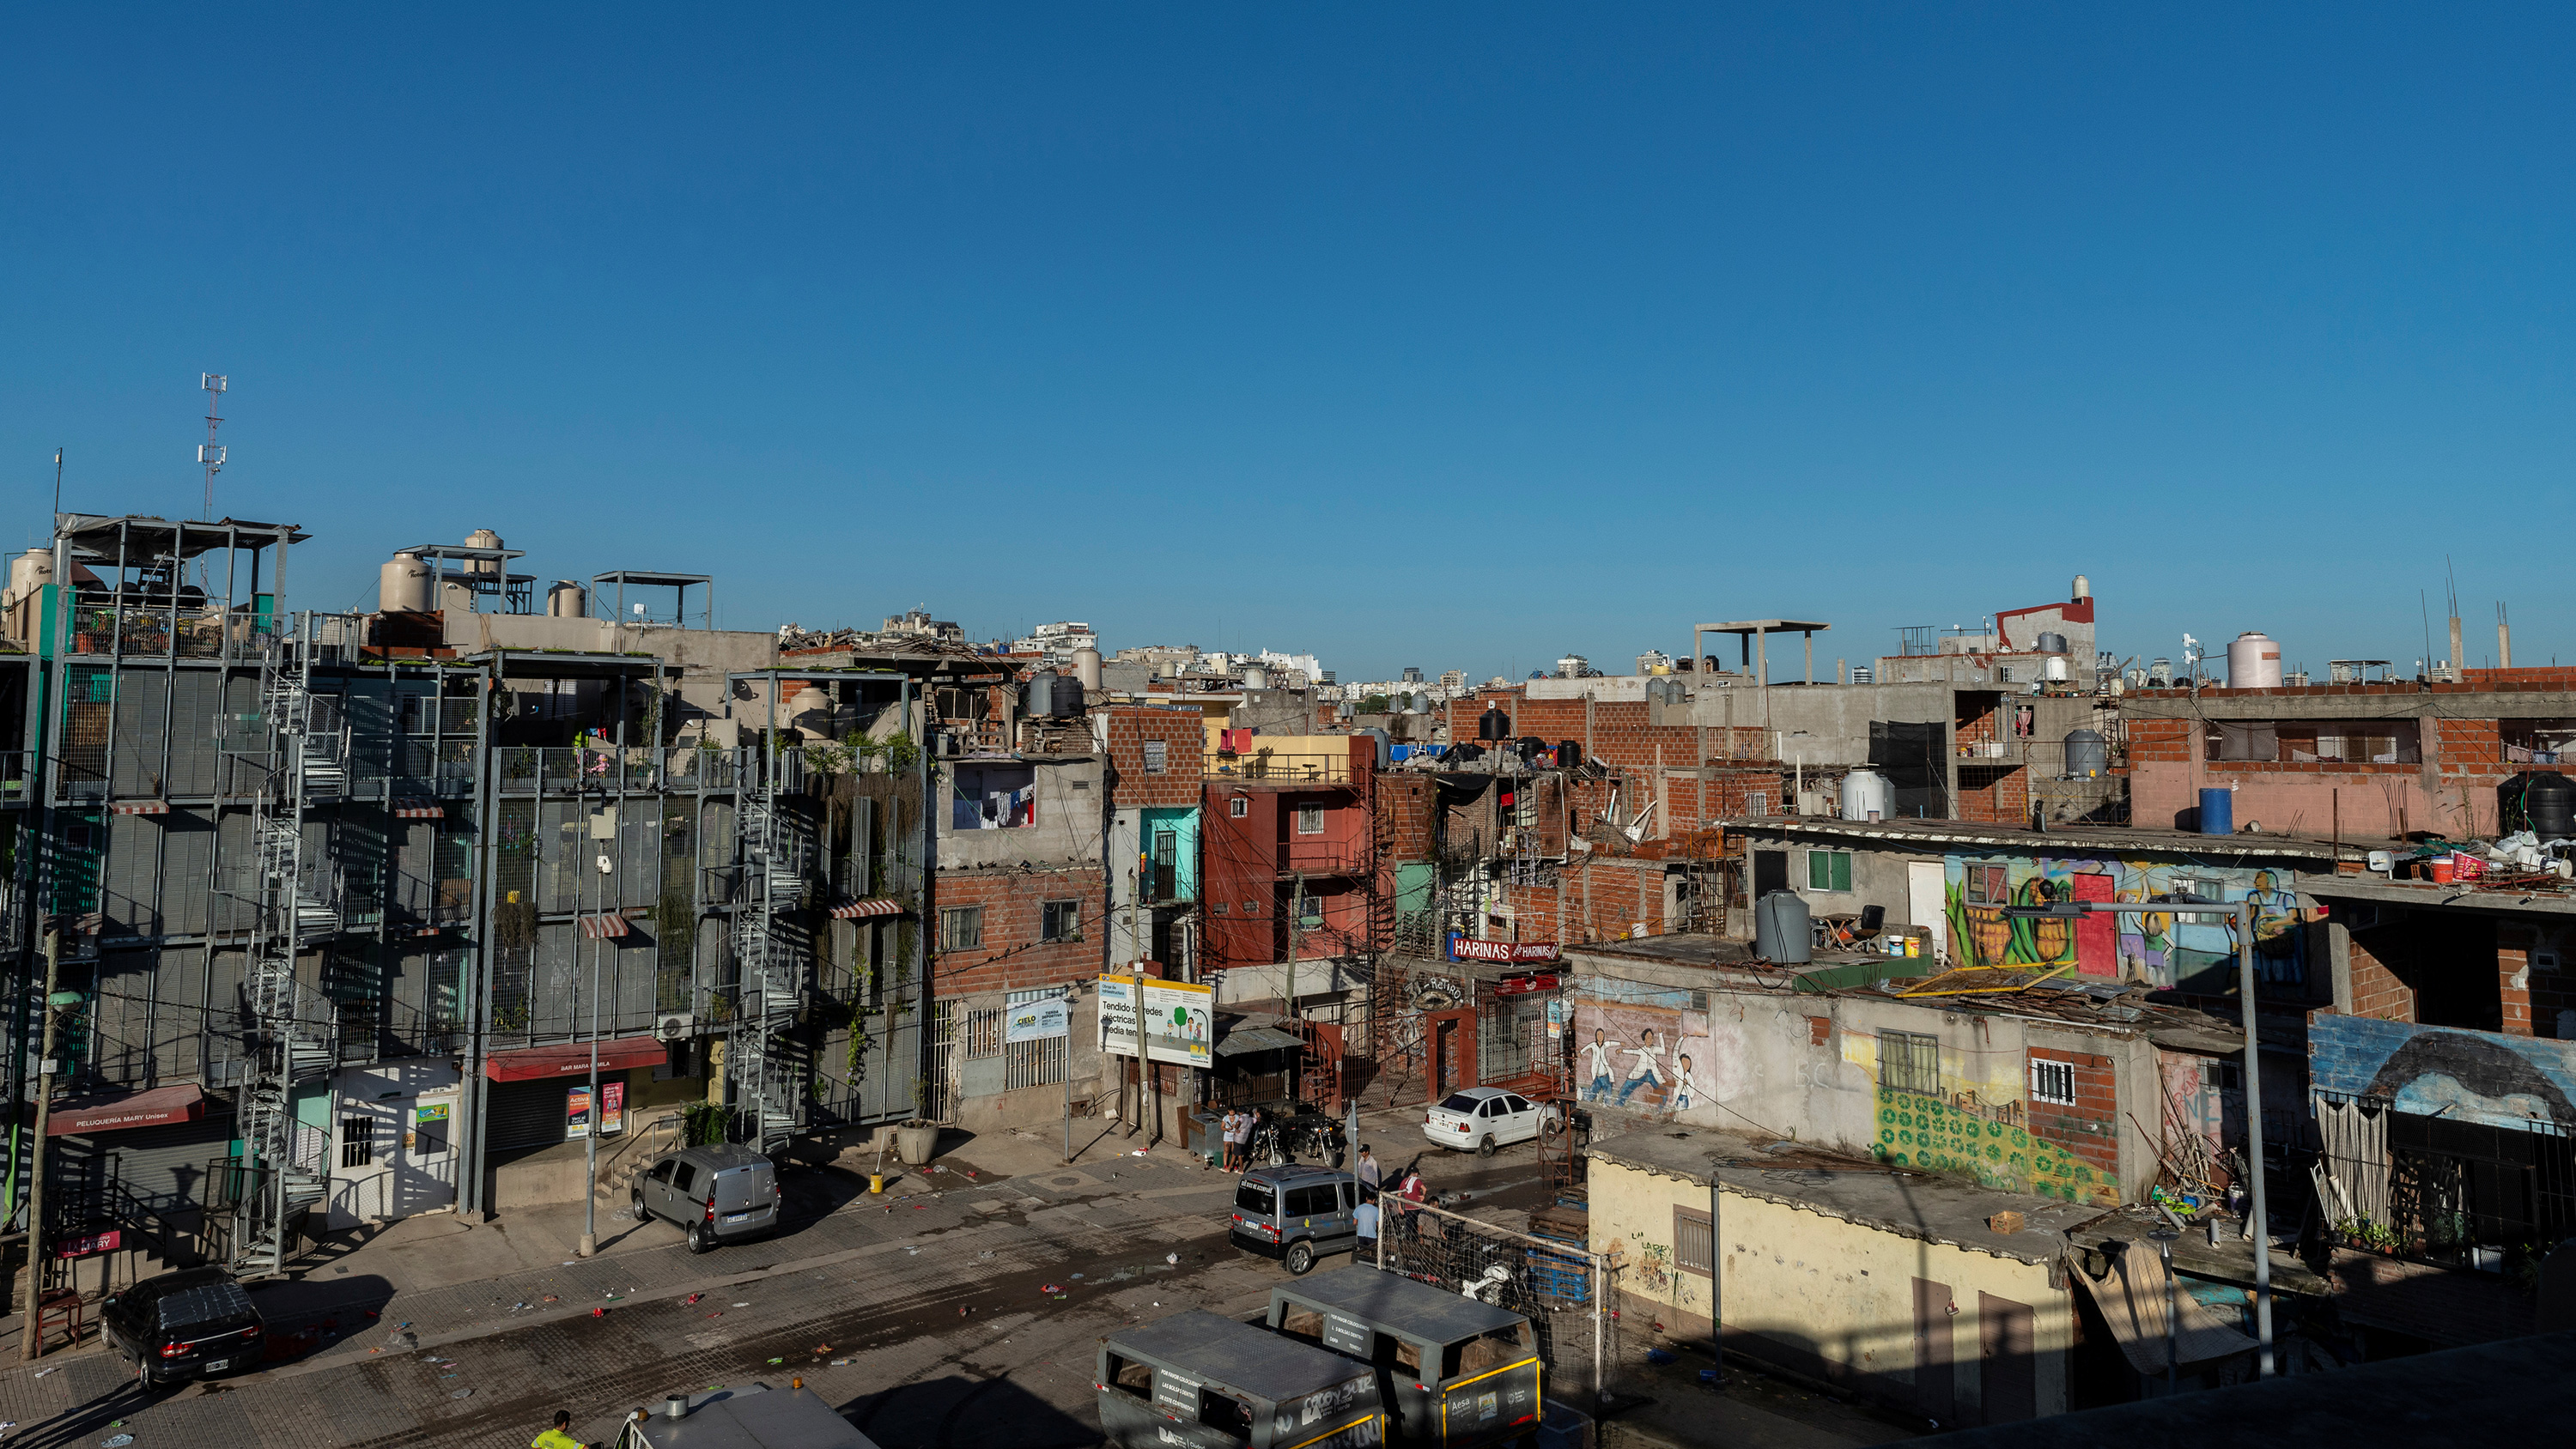 Photo shows a densely-packed brick and concrete community with box-like structures against a brilliant blue sky.